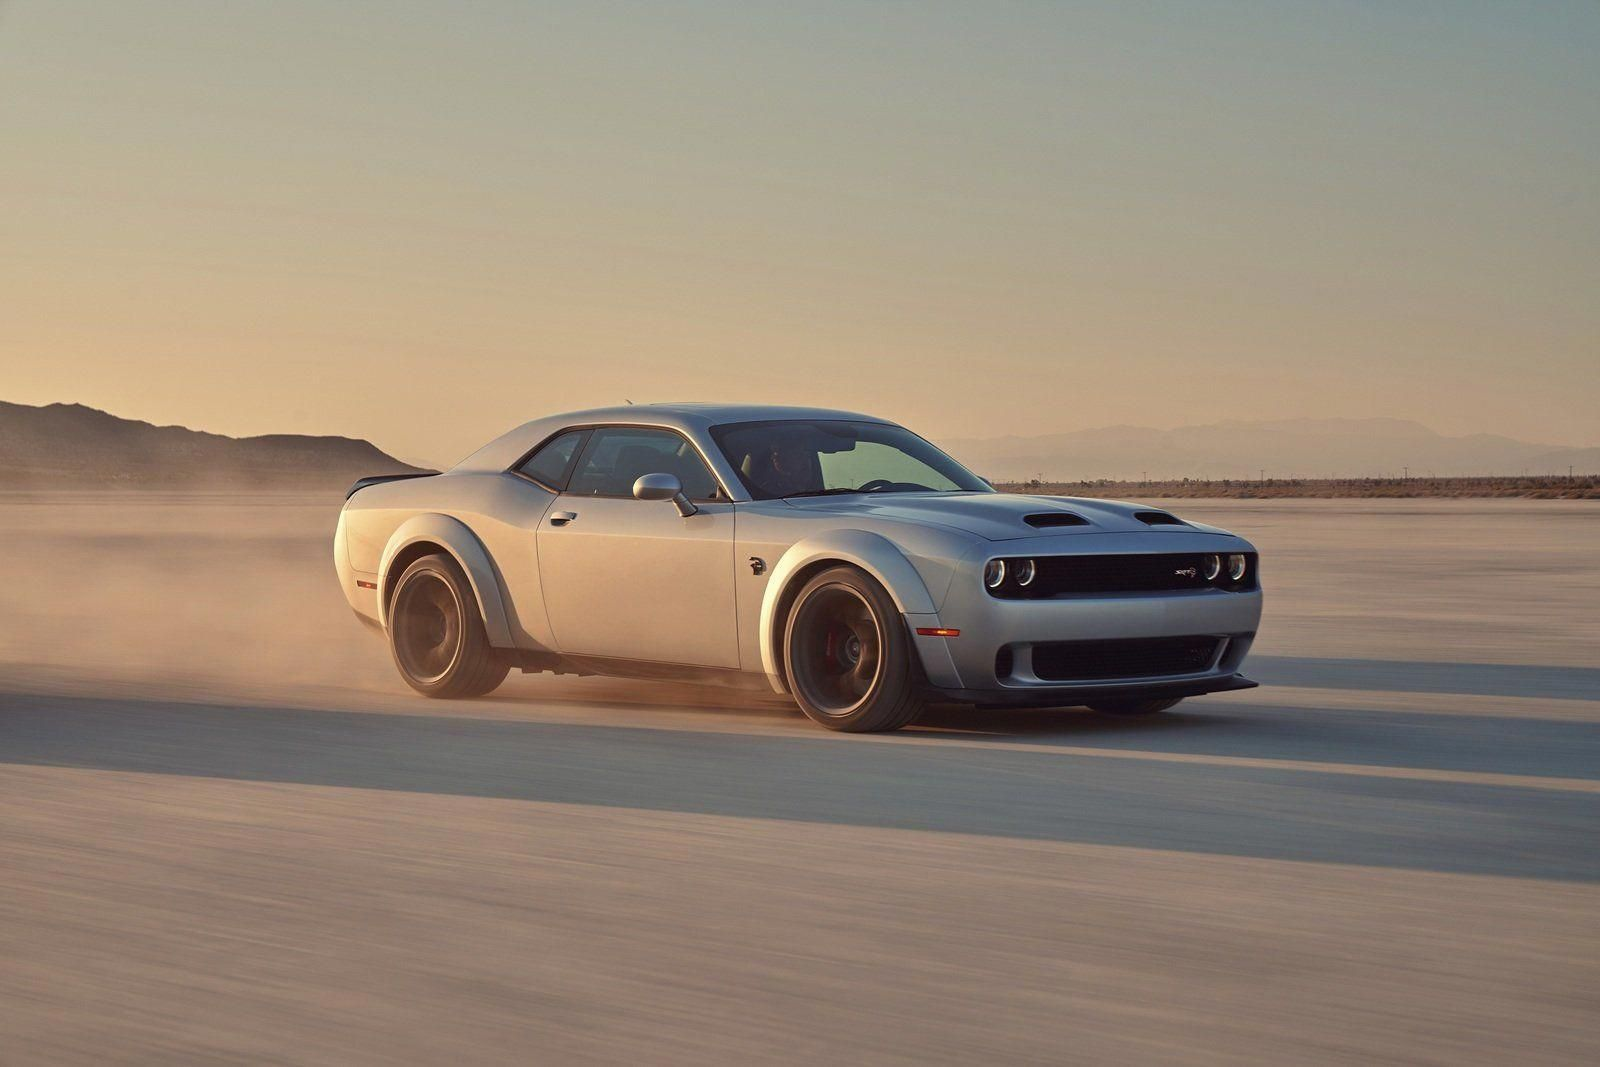 The 2019 Dodge Challenger Srt Hellcat Redeye Widebody Is Now The